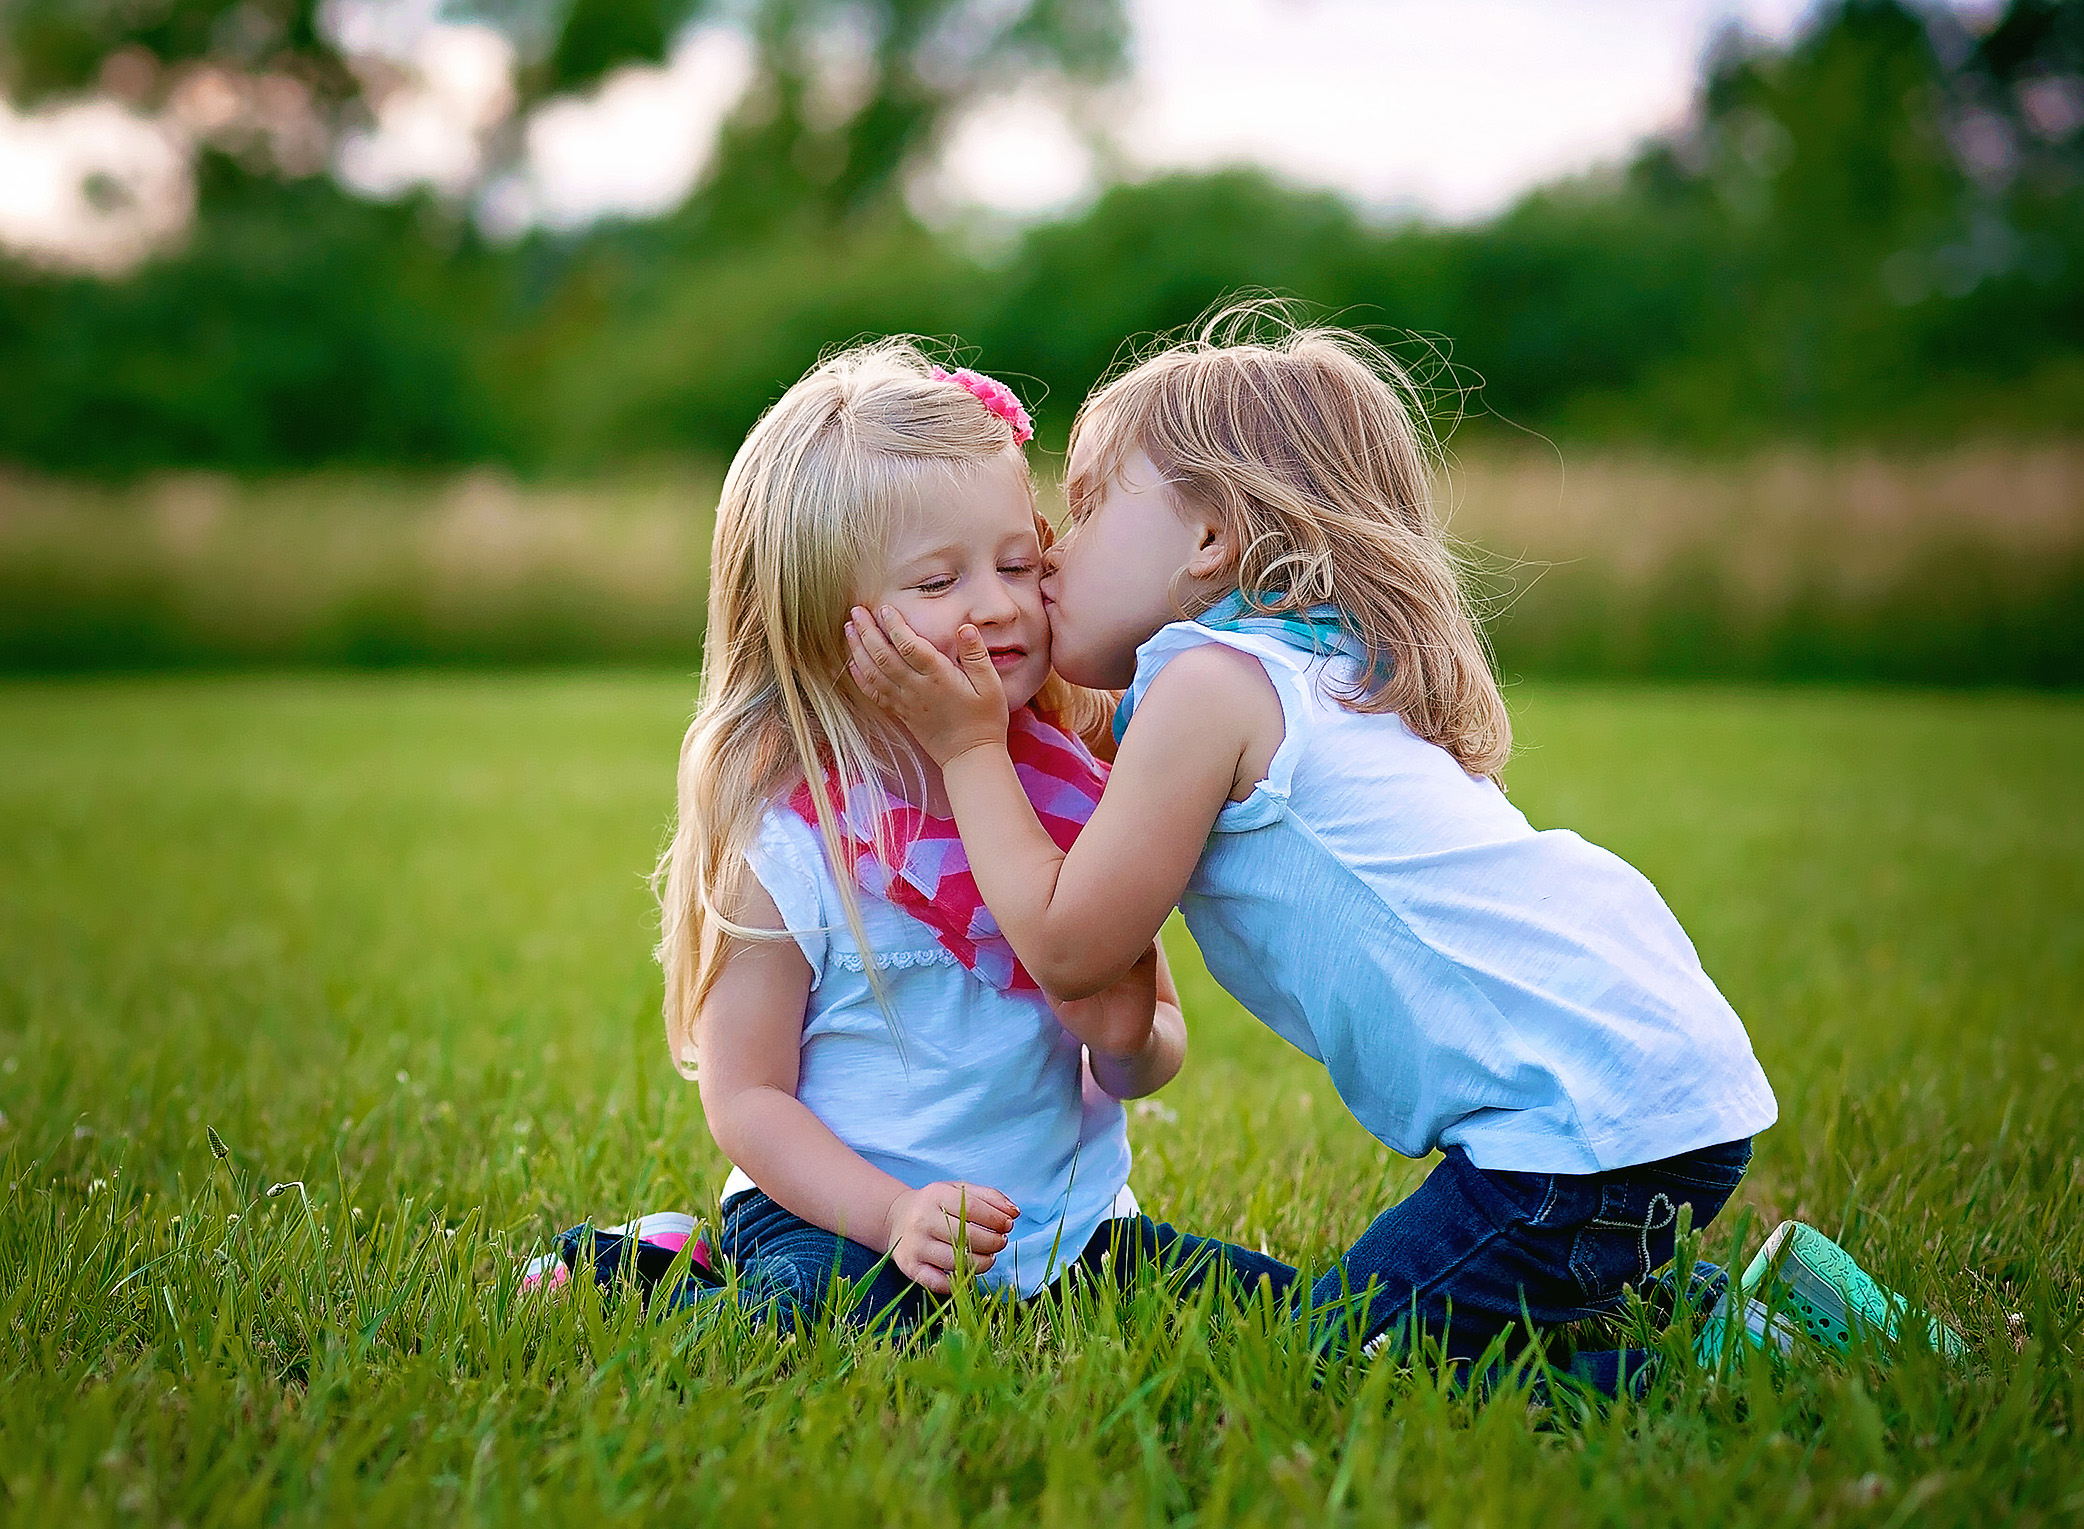 twin girls giving a kiss on the cheek